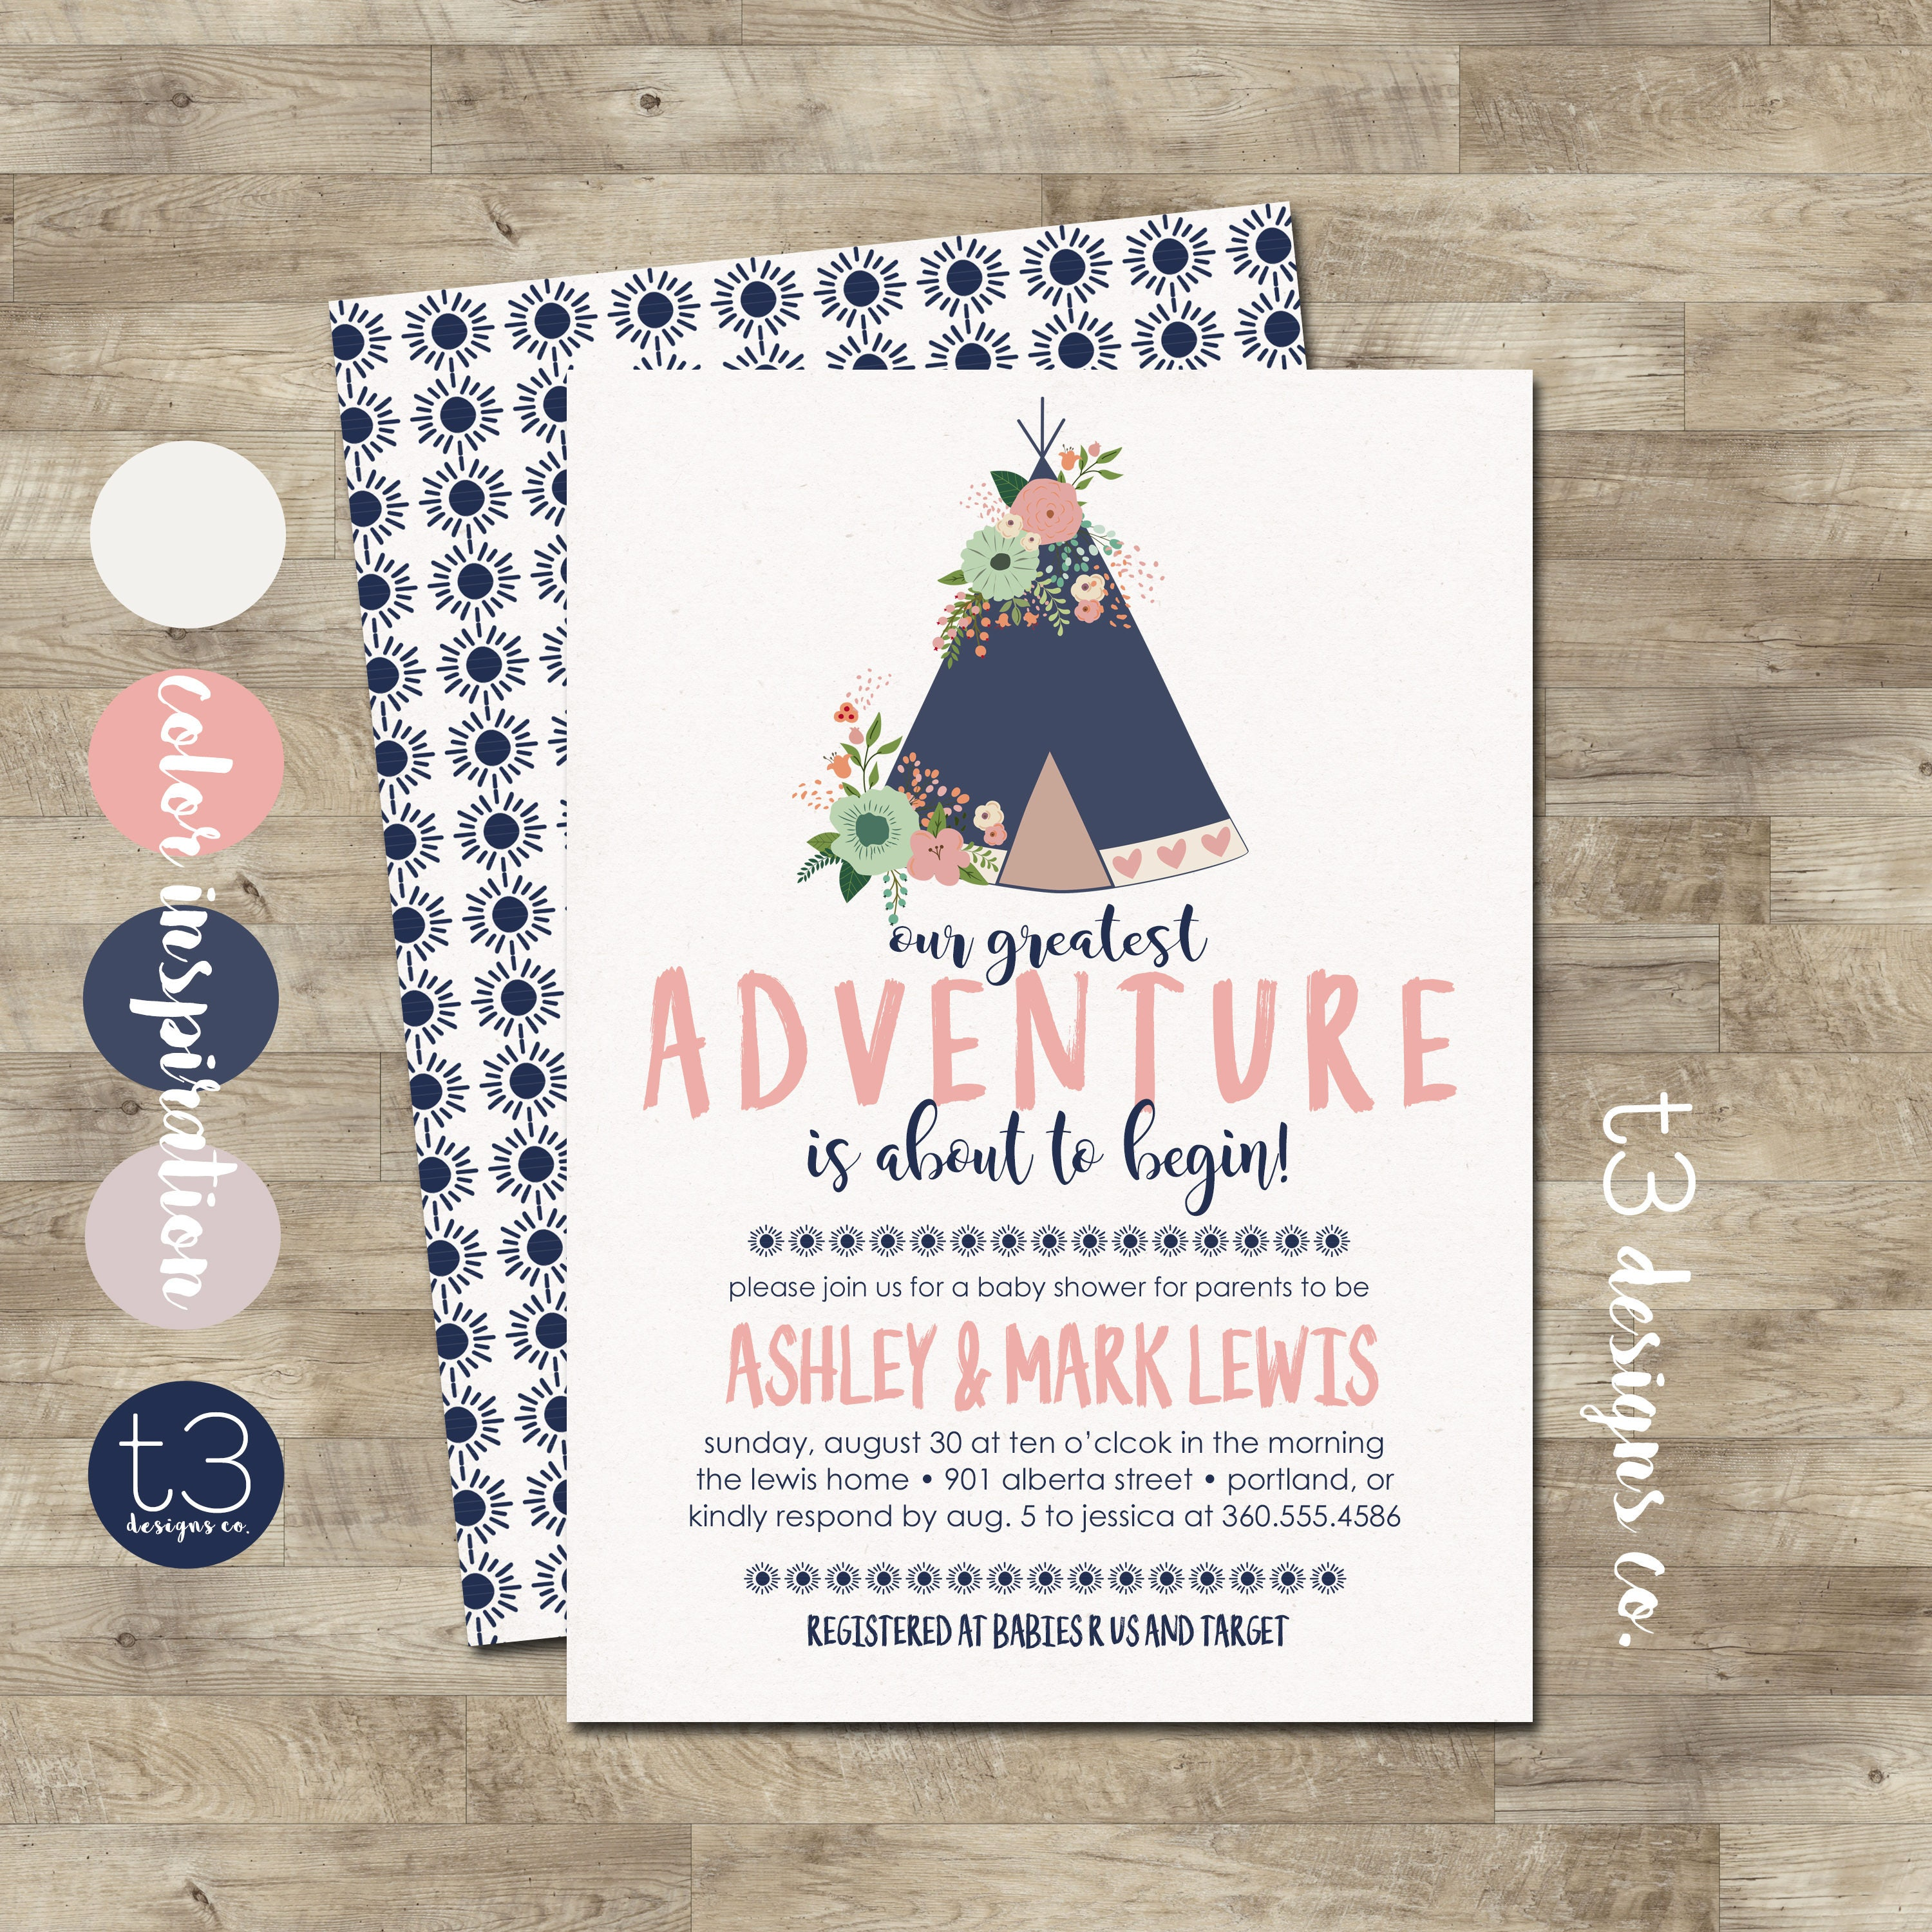 Girl teepee baby shower invitation our greatest adventure baby girl teepee baby shower invitation our greatest adventure baby shower girl baby shower invitation floral tee pee invite filmwisefo